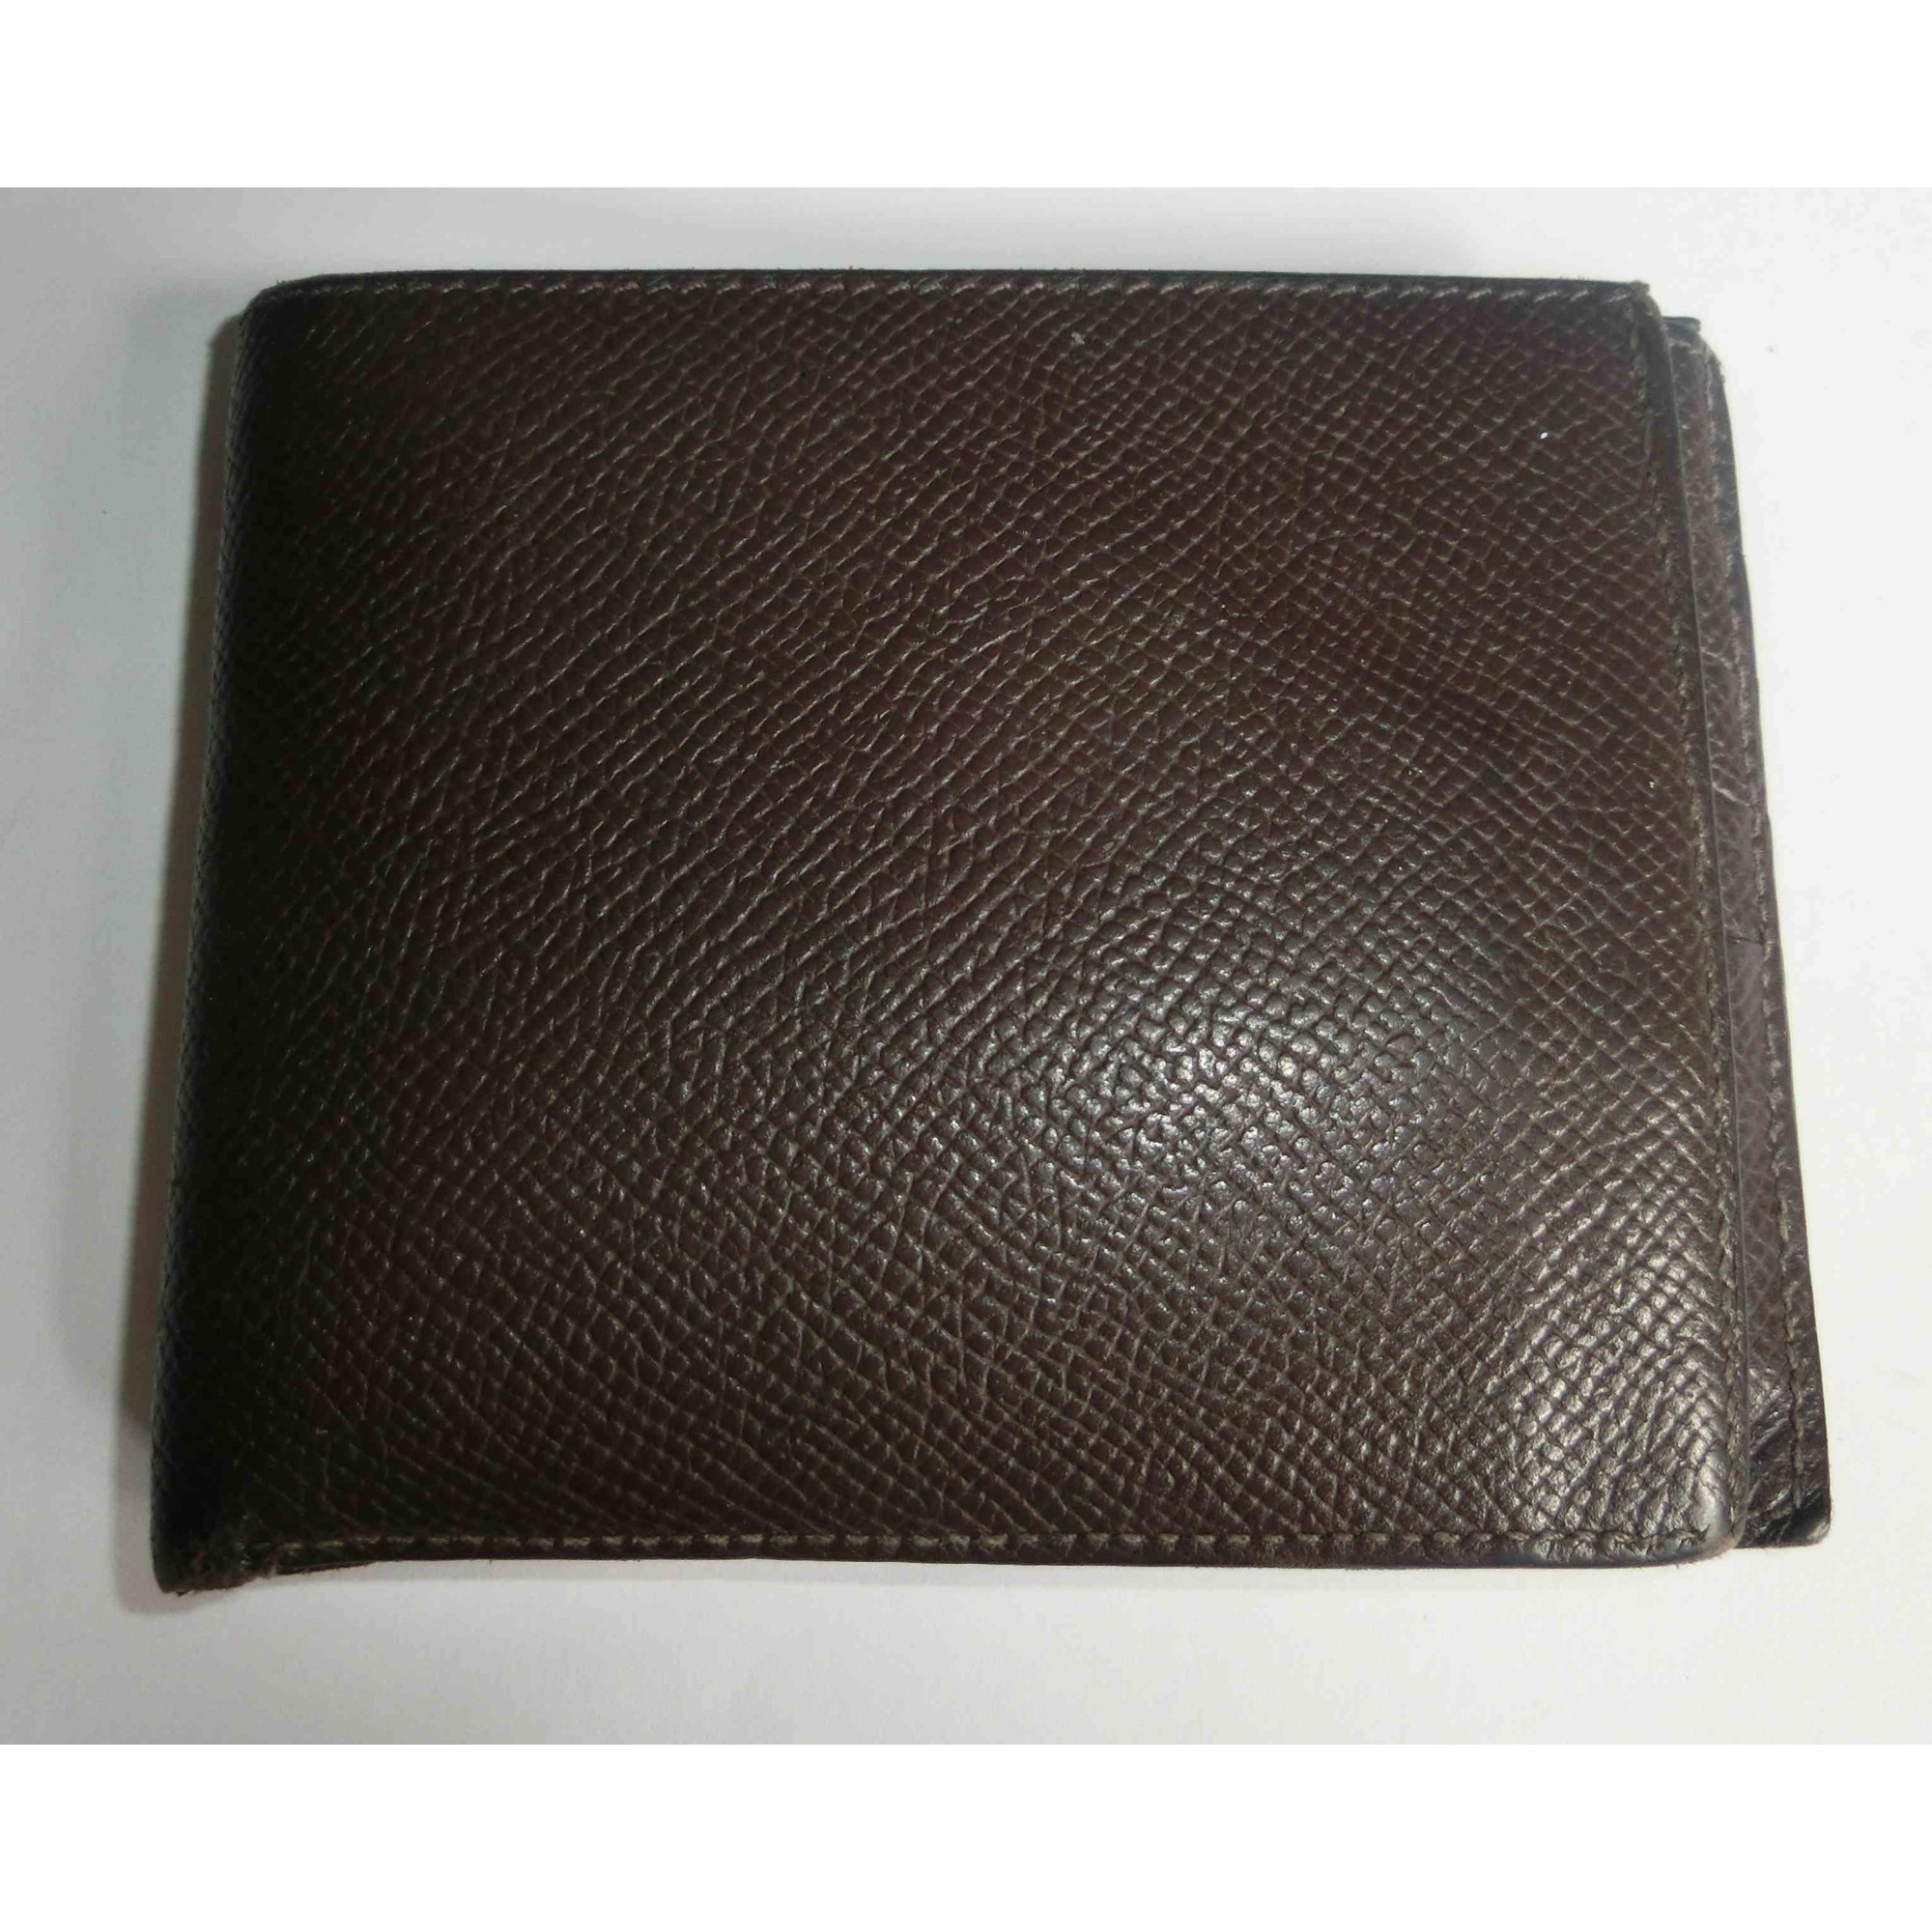 eb4ec52ed9 Portefeuille HERMÈS marron vendu par Destockdress - 2650394